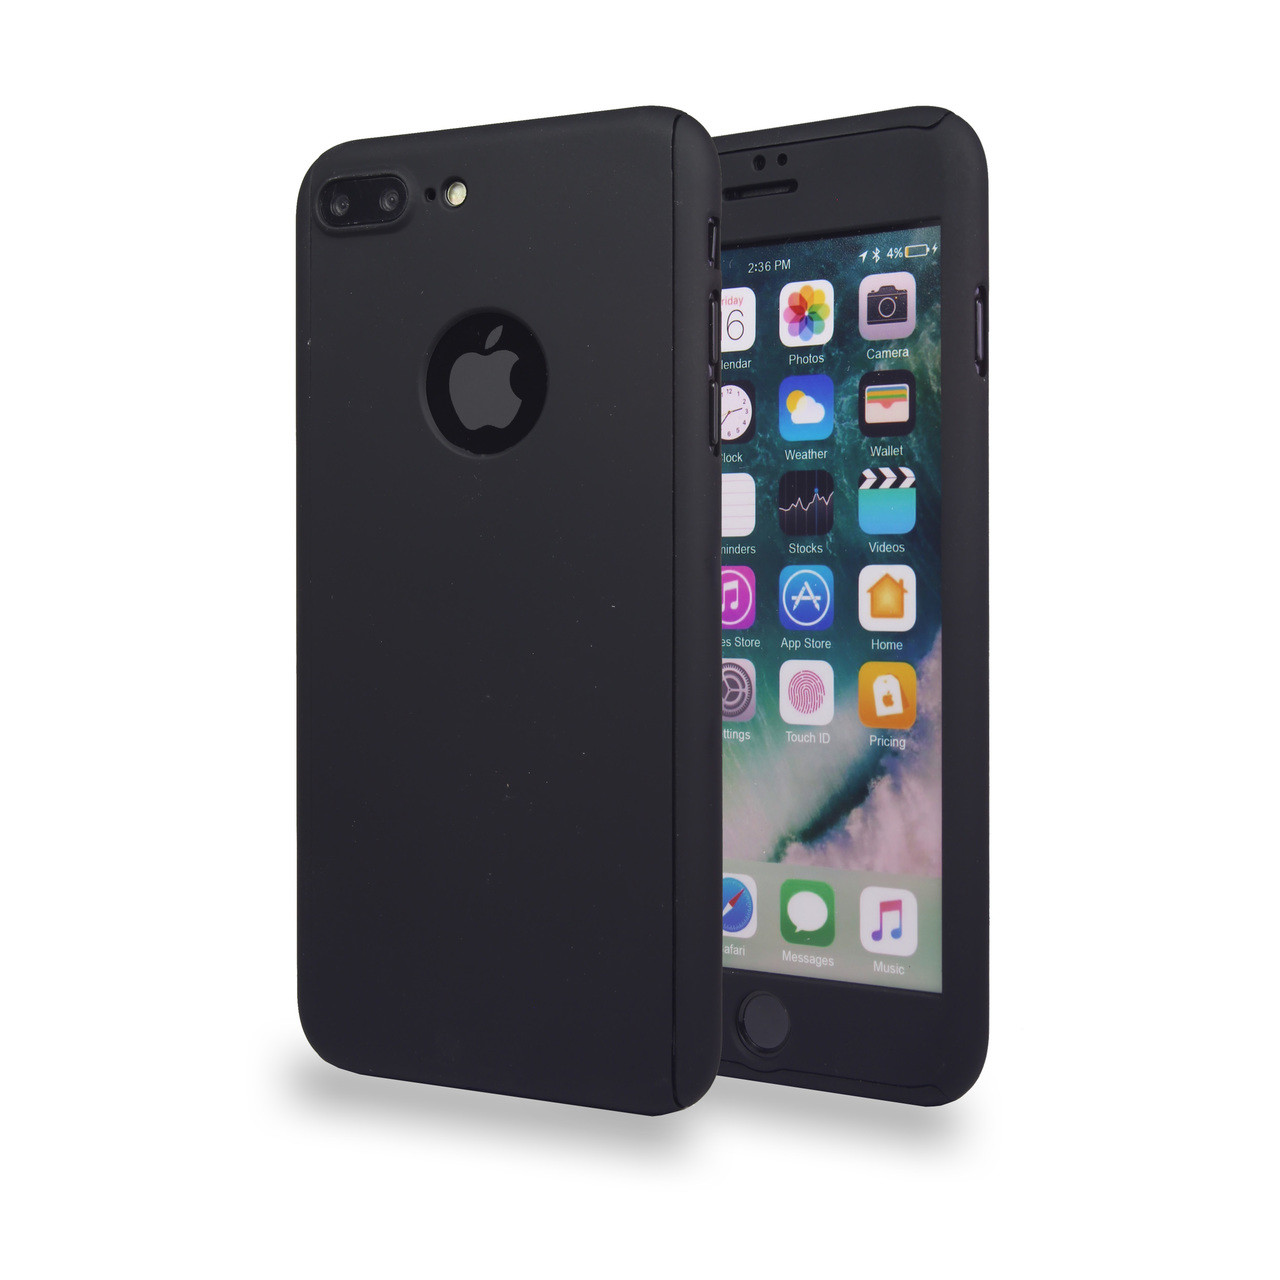 360° Extreme Snap On Protective Case For iPhone 6 Black